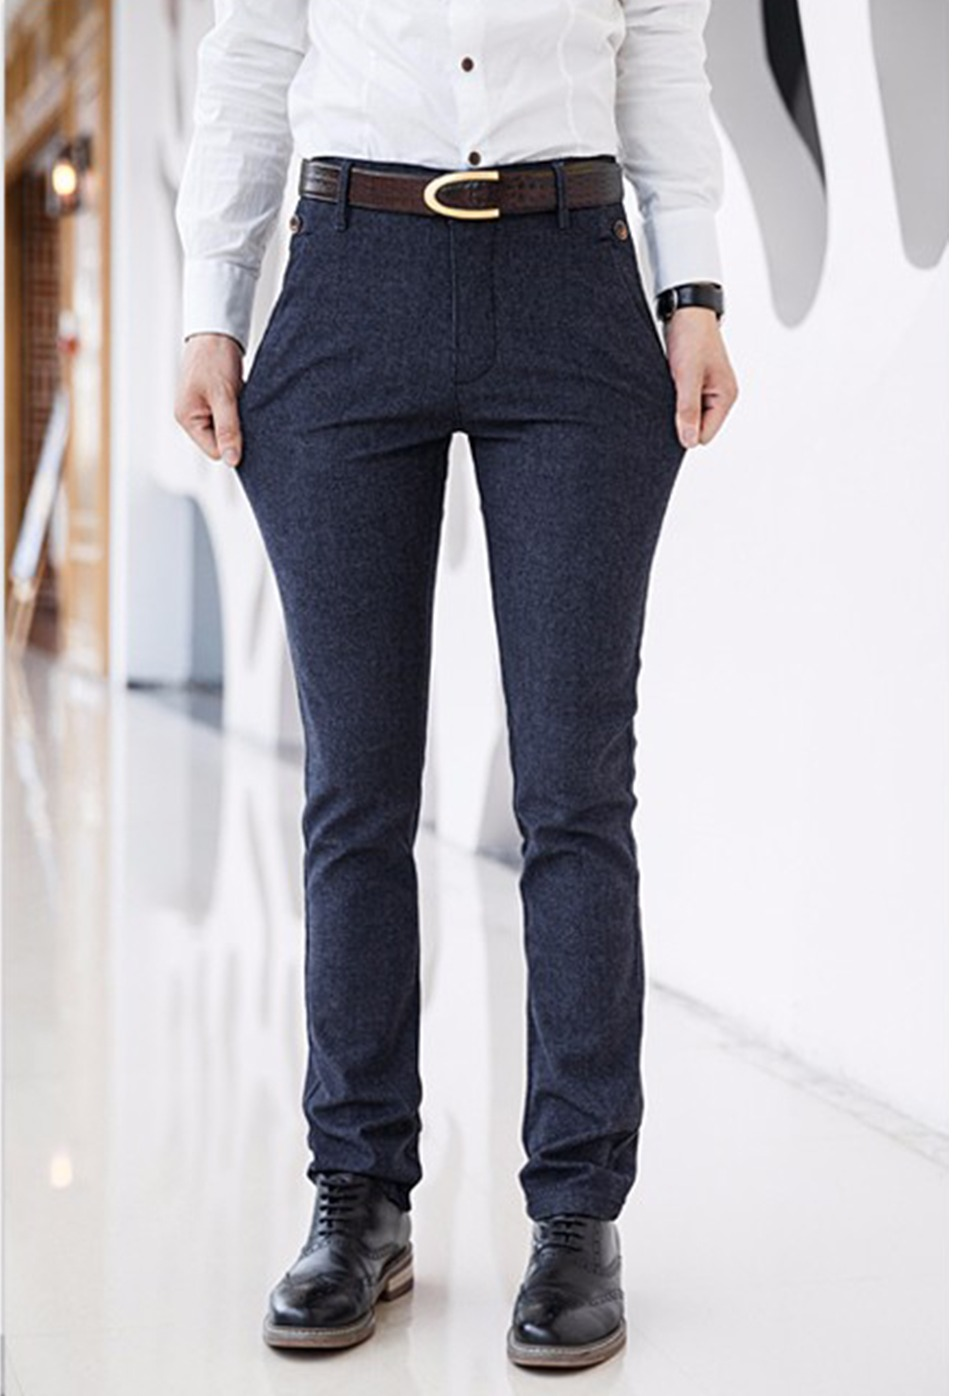 H9238b30394f44969886617a17967f47c9 HCYX Brand 2019 four season Classic High quality Men's Casual Pants Trousers Men Casual Pants Business Straight Size 38